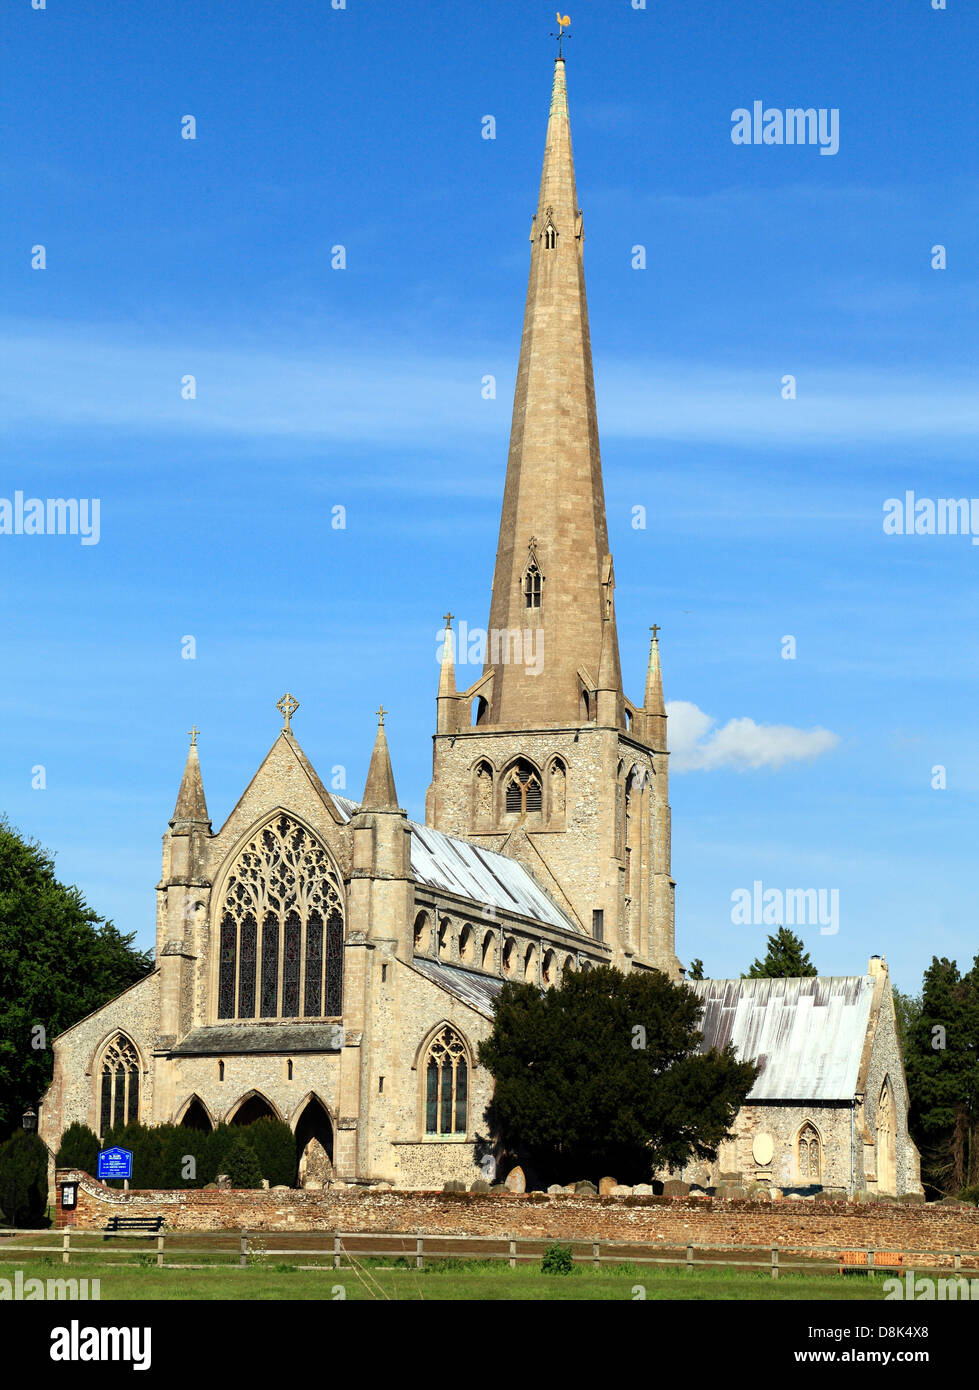 Snettisham, Norfolk, medieval church with spire, England, UK, English churches spires - Stock Image